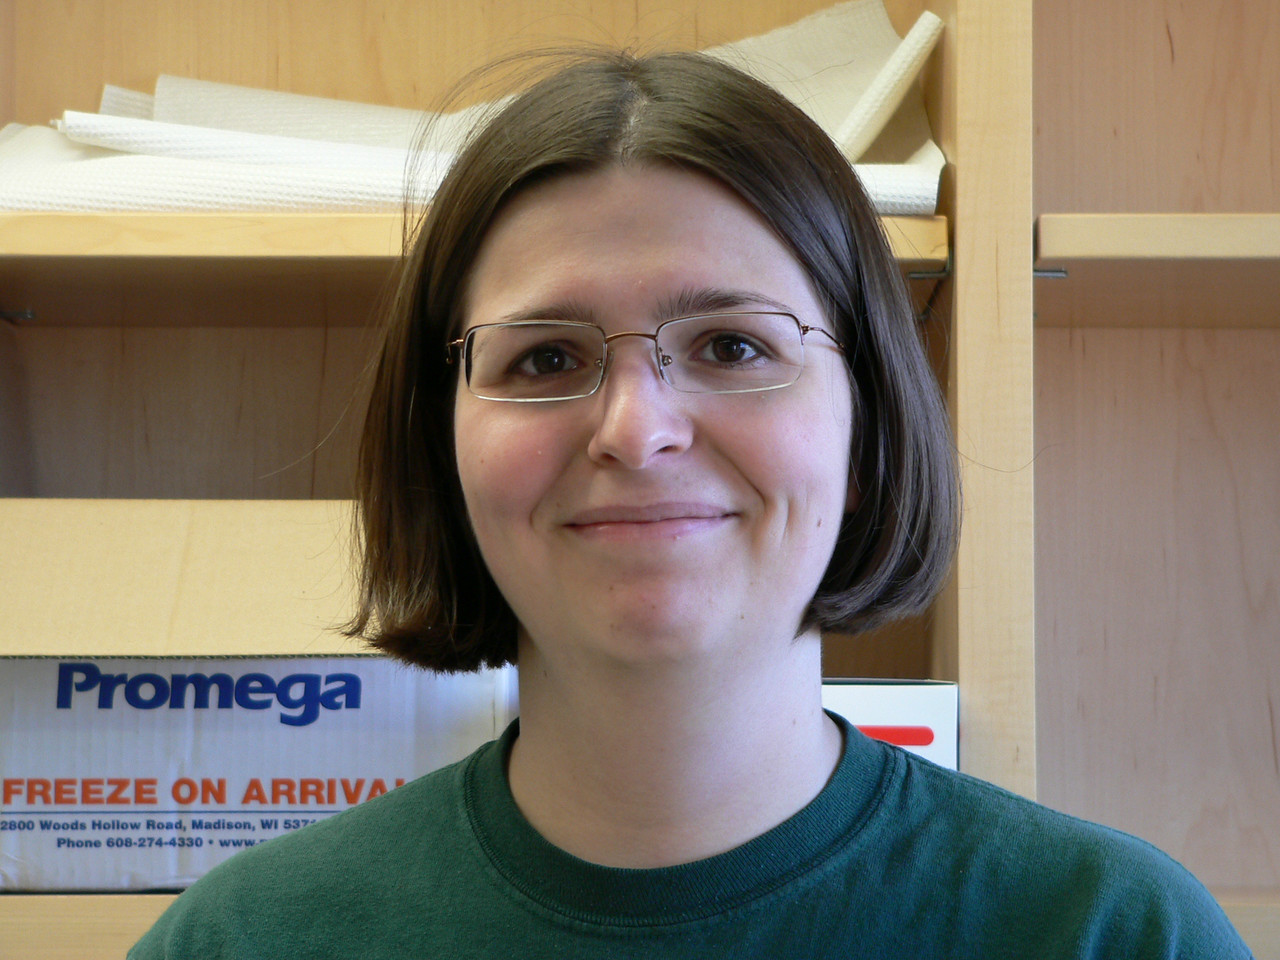 Janet - a rotation student in our lab. Very bright and a good friend.